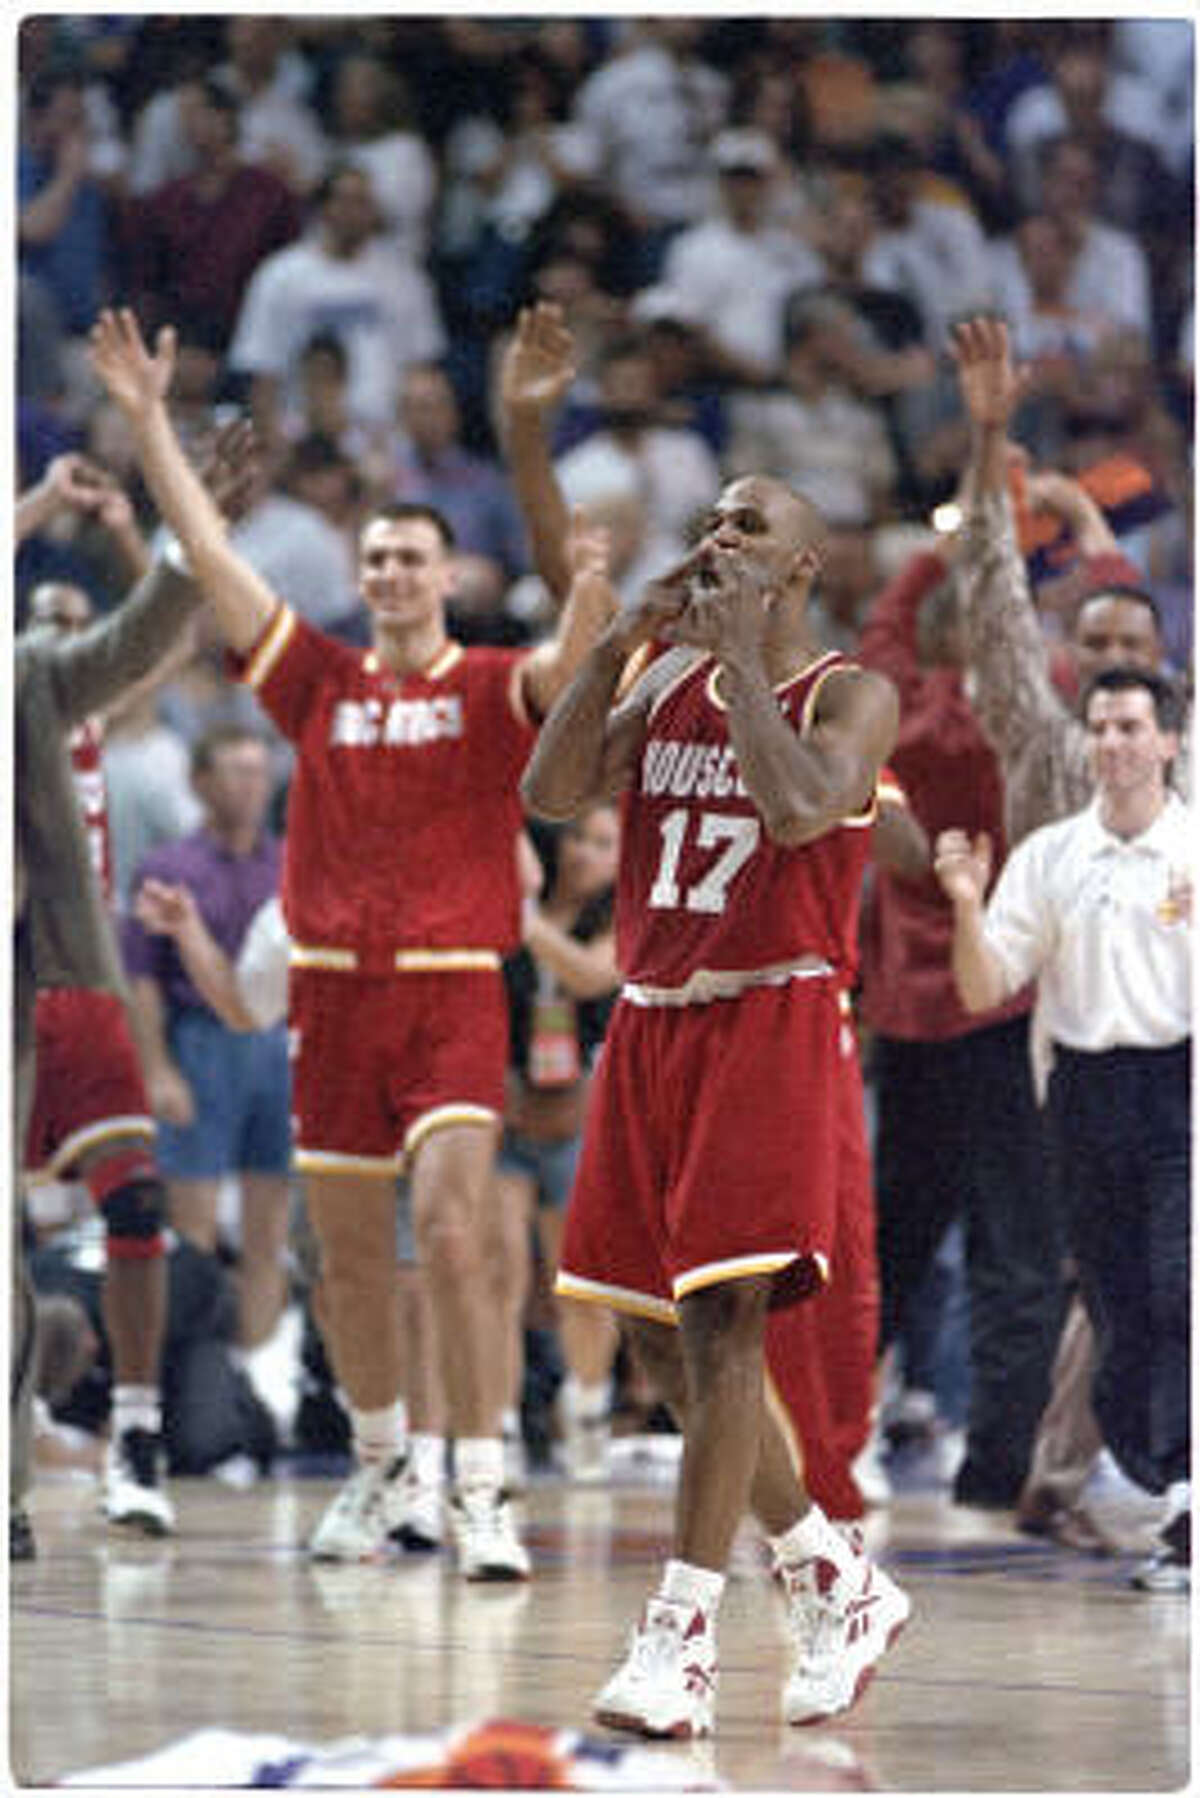 Mario Elie kissed off the Suns and their fans after making the game-winning 3-pointer in Game 7 in the 1995 playoffs.